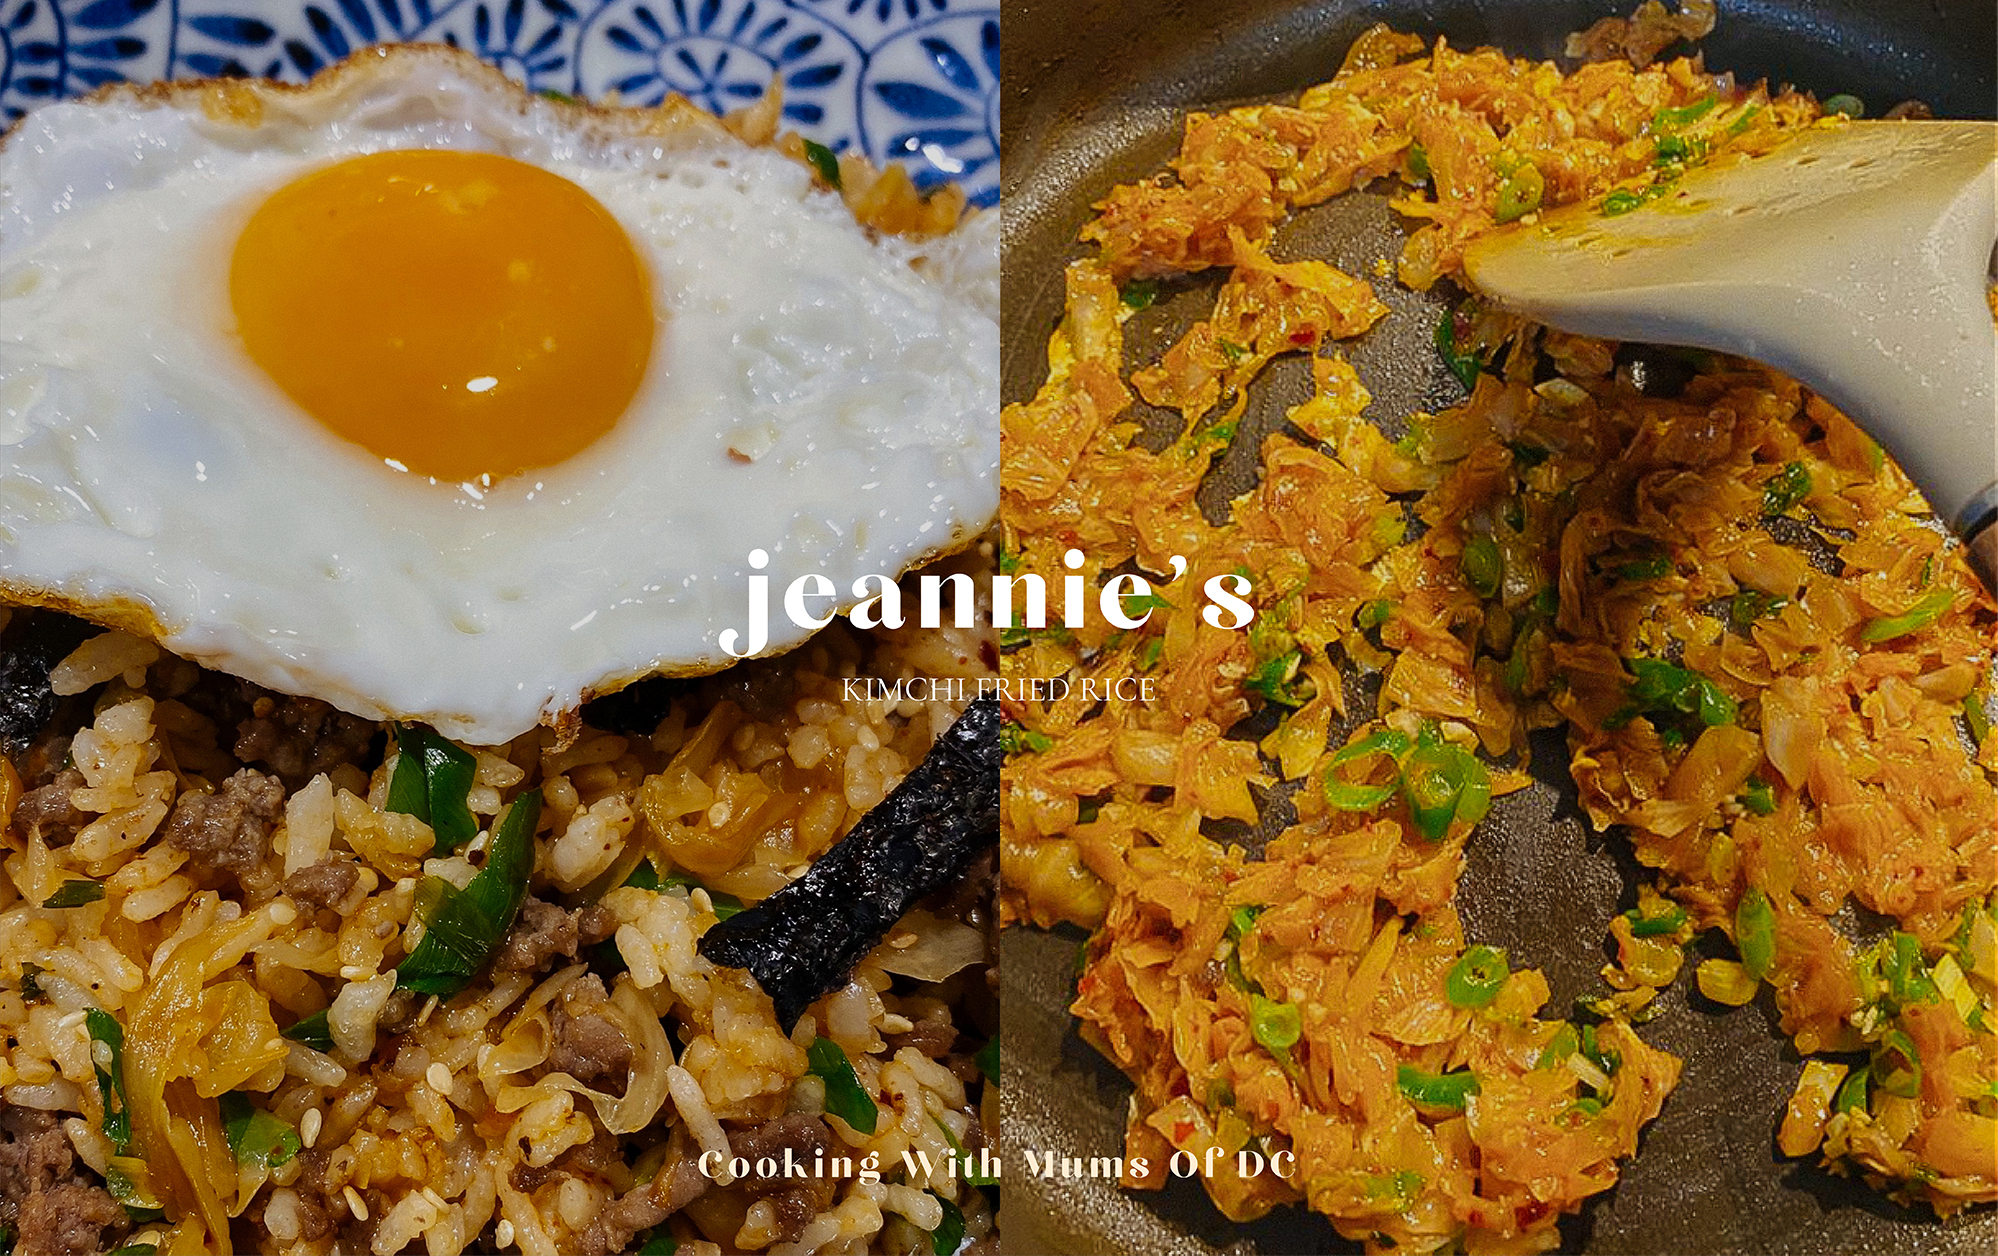 Cooking With Mums Of DC: Jeannie's Kimchi Fried Rice Recipe